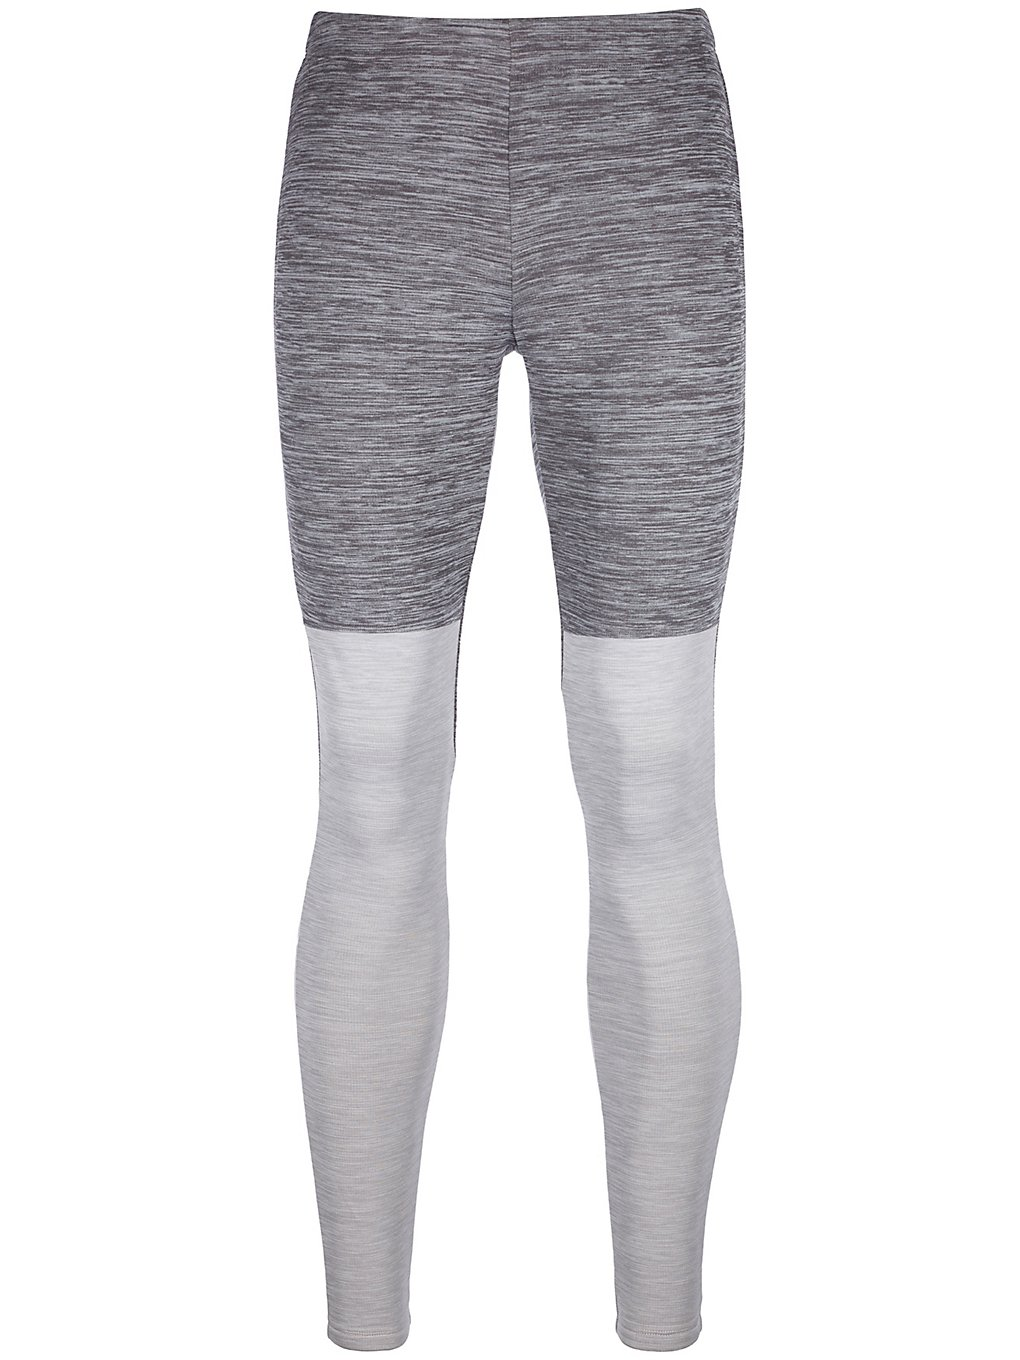 Ortovox Fleece Light Long Base Layer Bottom grijs